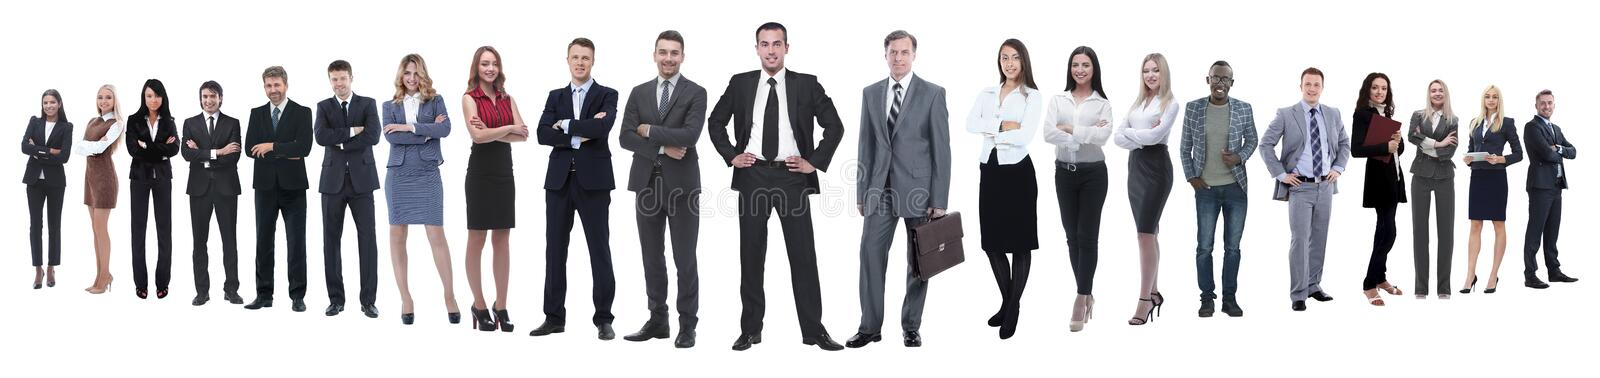 Panoramic photo of a professional numerous business team royalty free stock photos